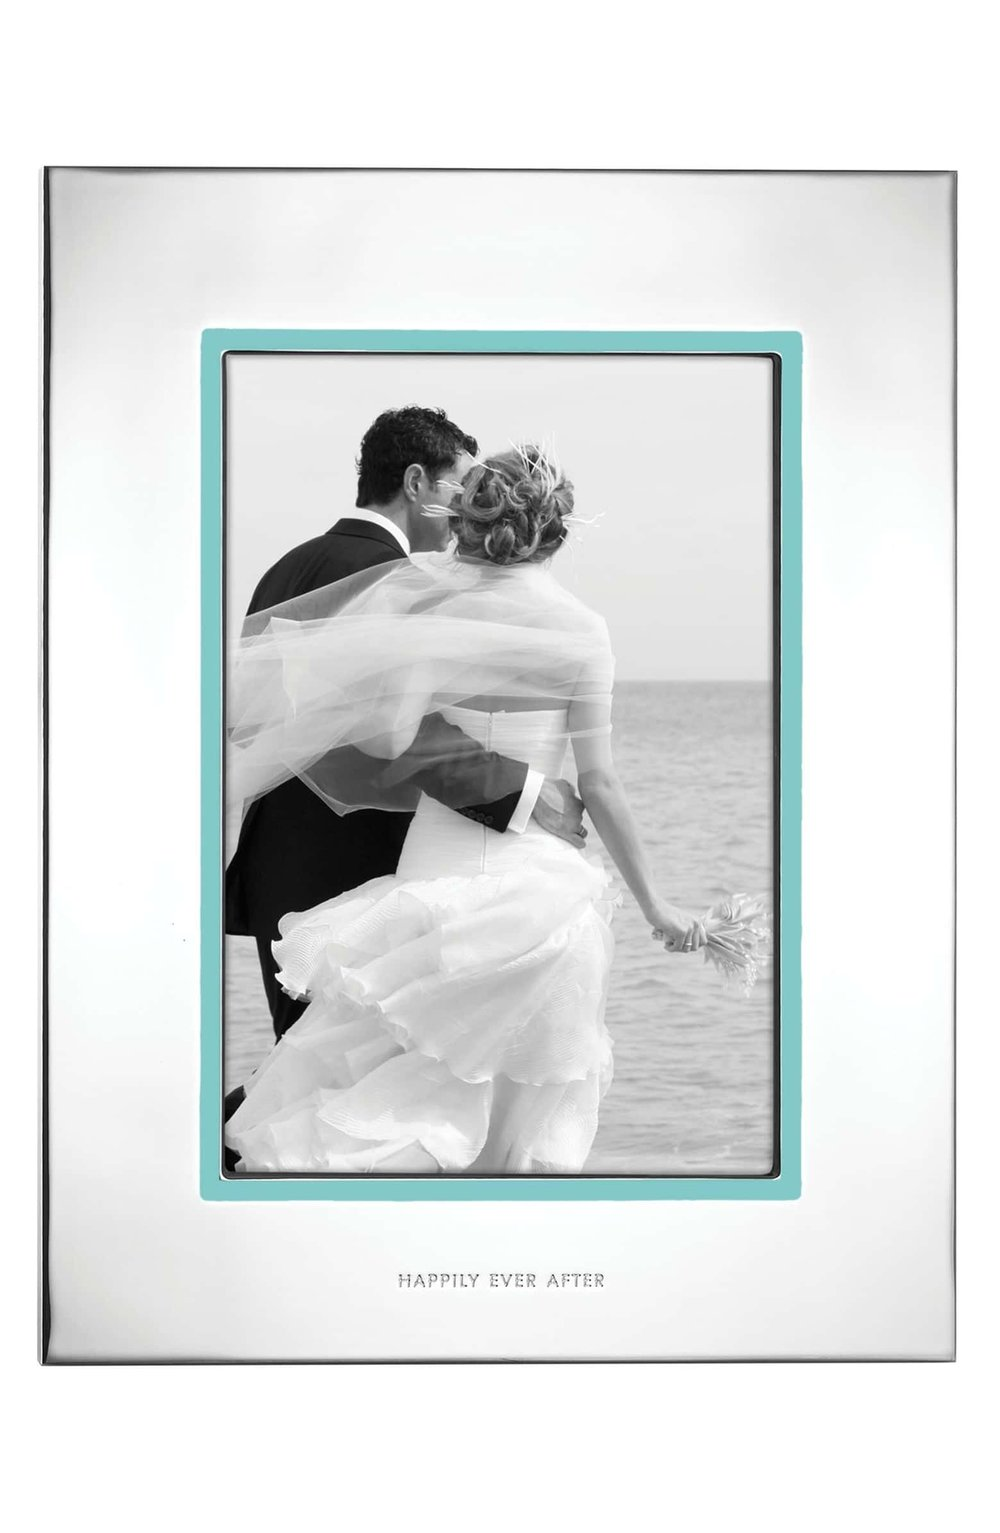 Kate Spade New York Take The Cake Picture Frame - How beautiful is this frame?! It's $50 and a super classy and chic gift for any couple. I love the Tiffany blue accent.